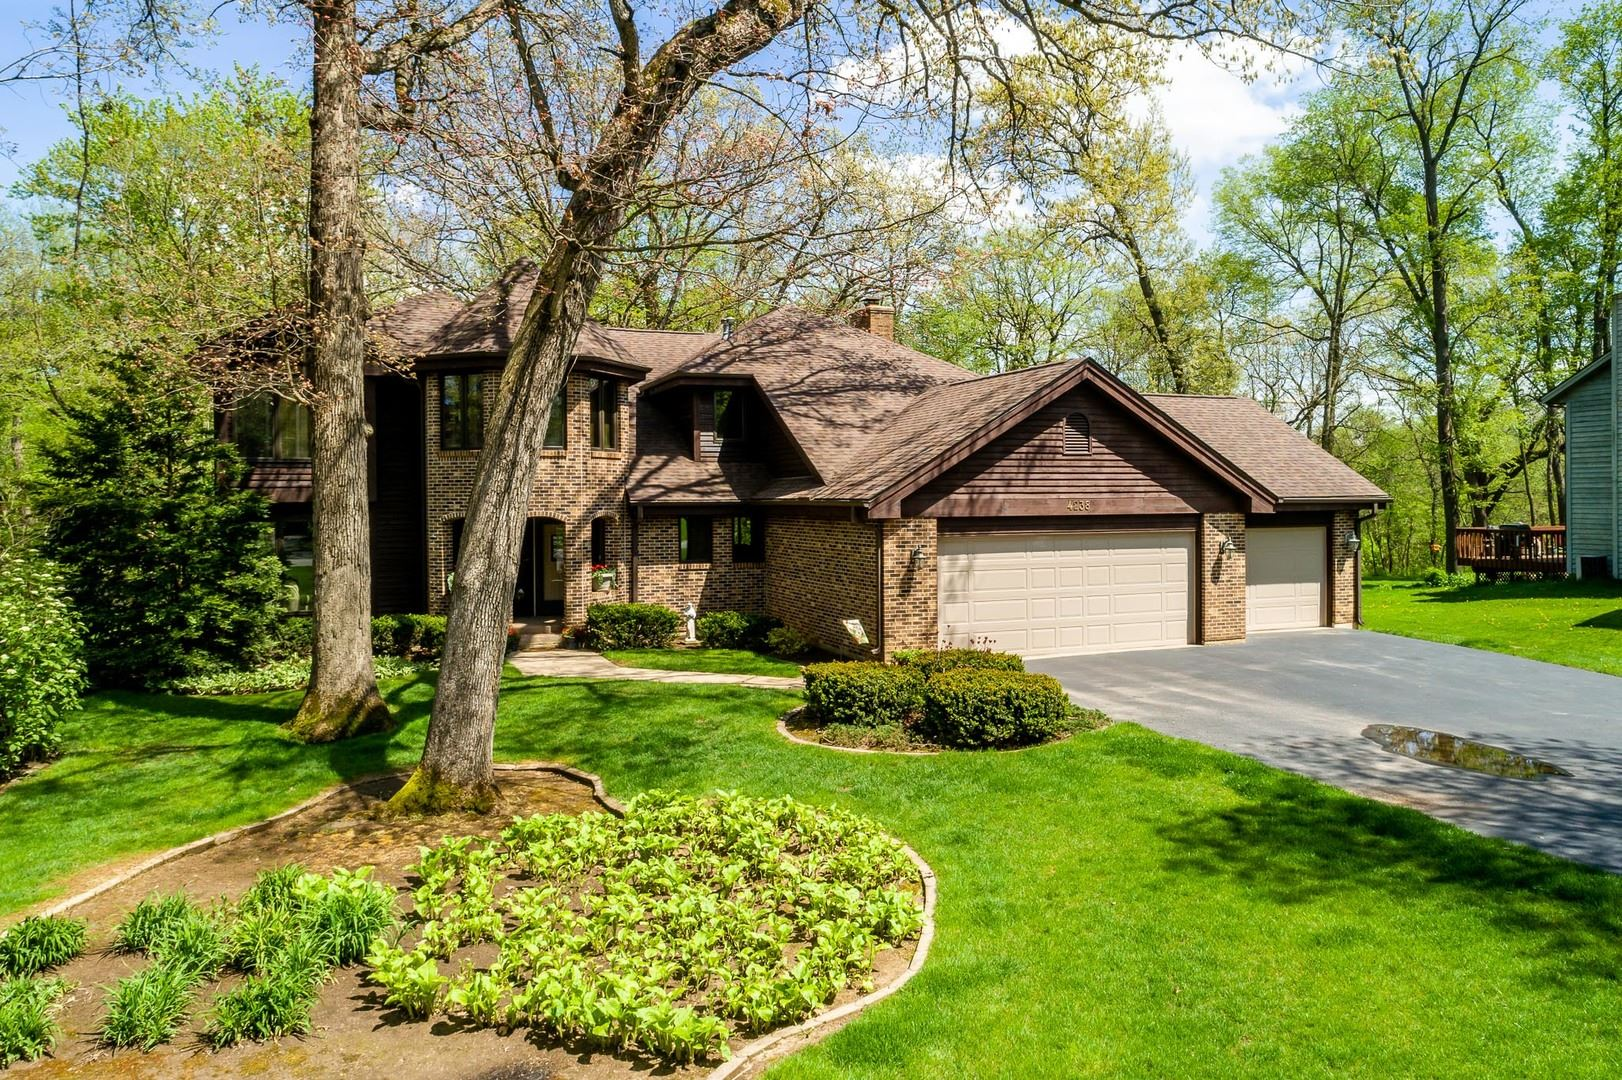 4238 Barley Ridge Trail, Cherry Valley, IL 61016 - #: 10717456